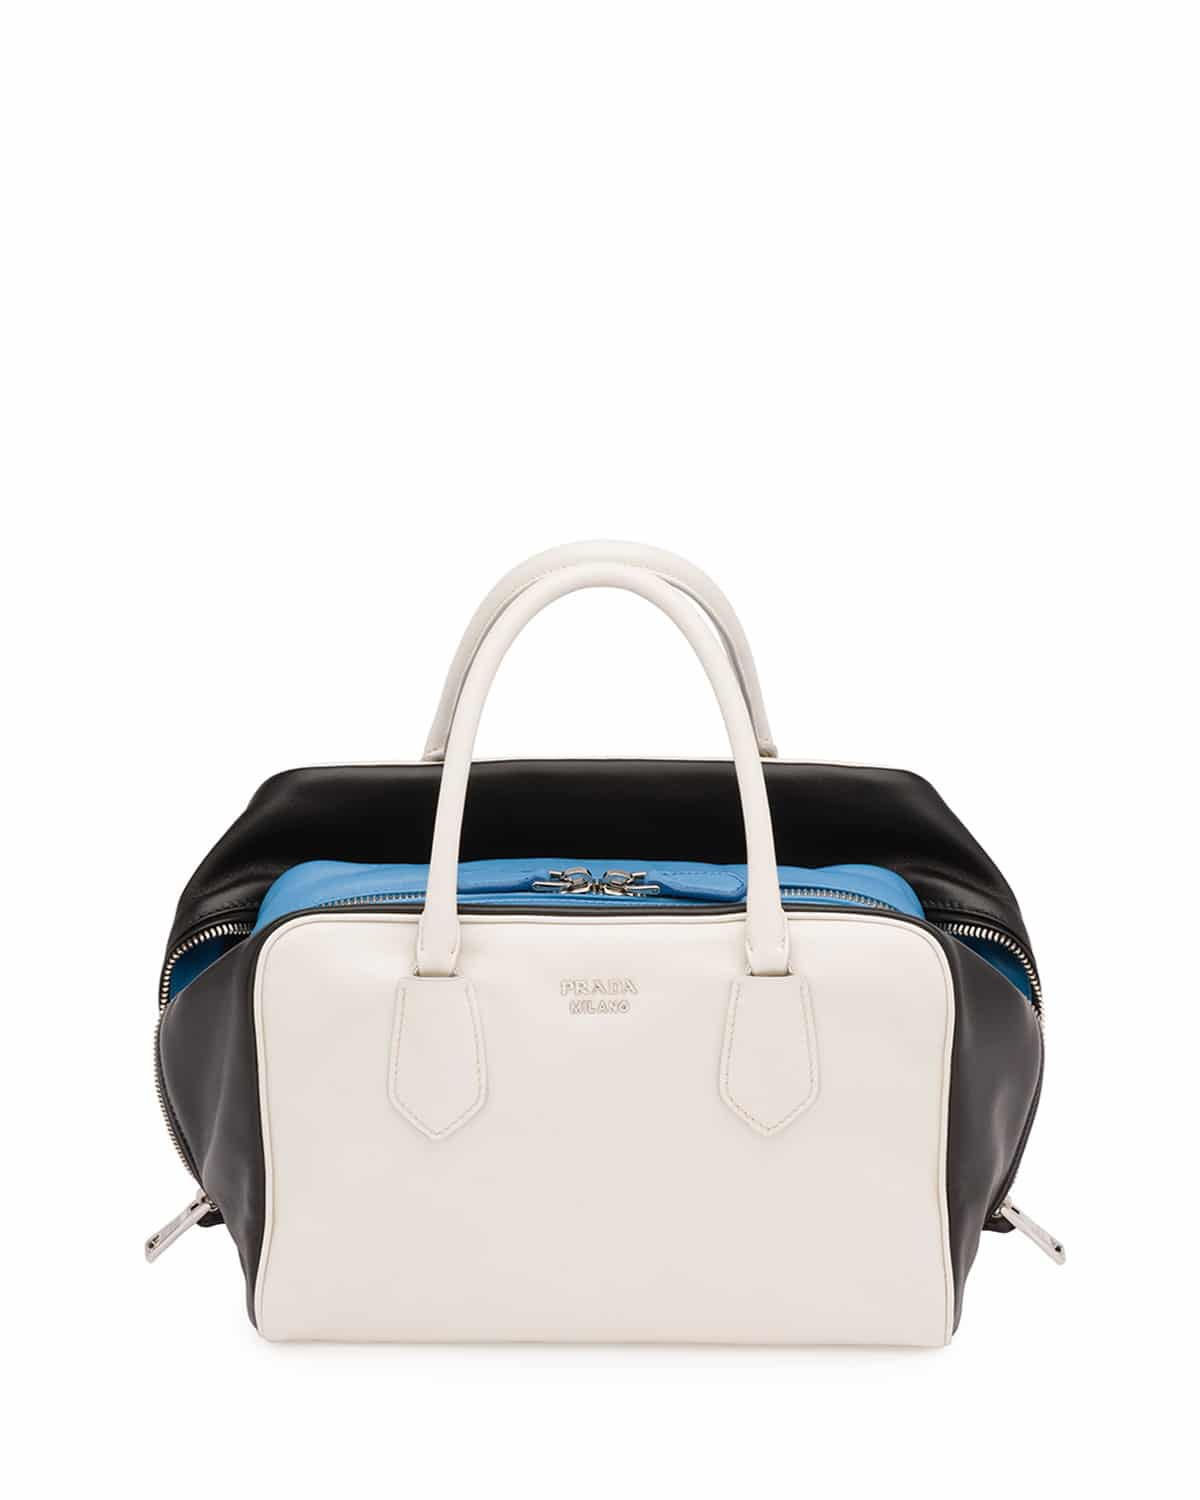 4fcf43463d95 Prada Resort 2016 Bag Collection Featuring Perforated Handbags ...